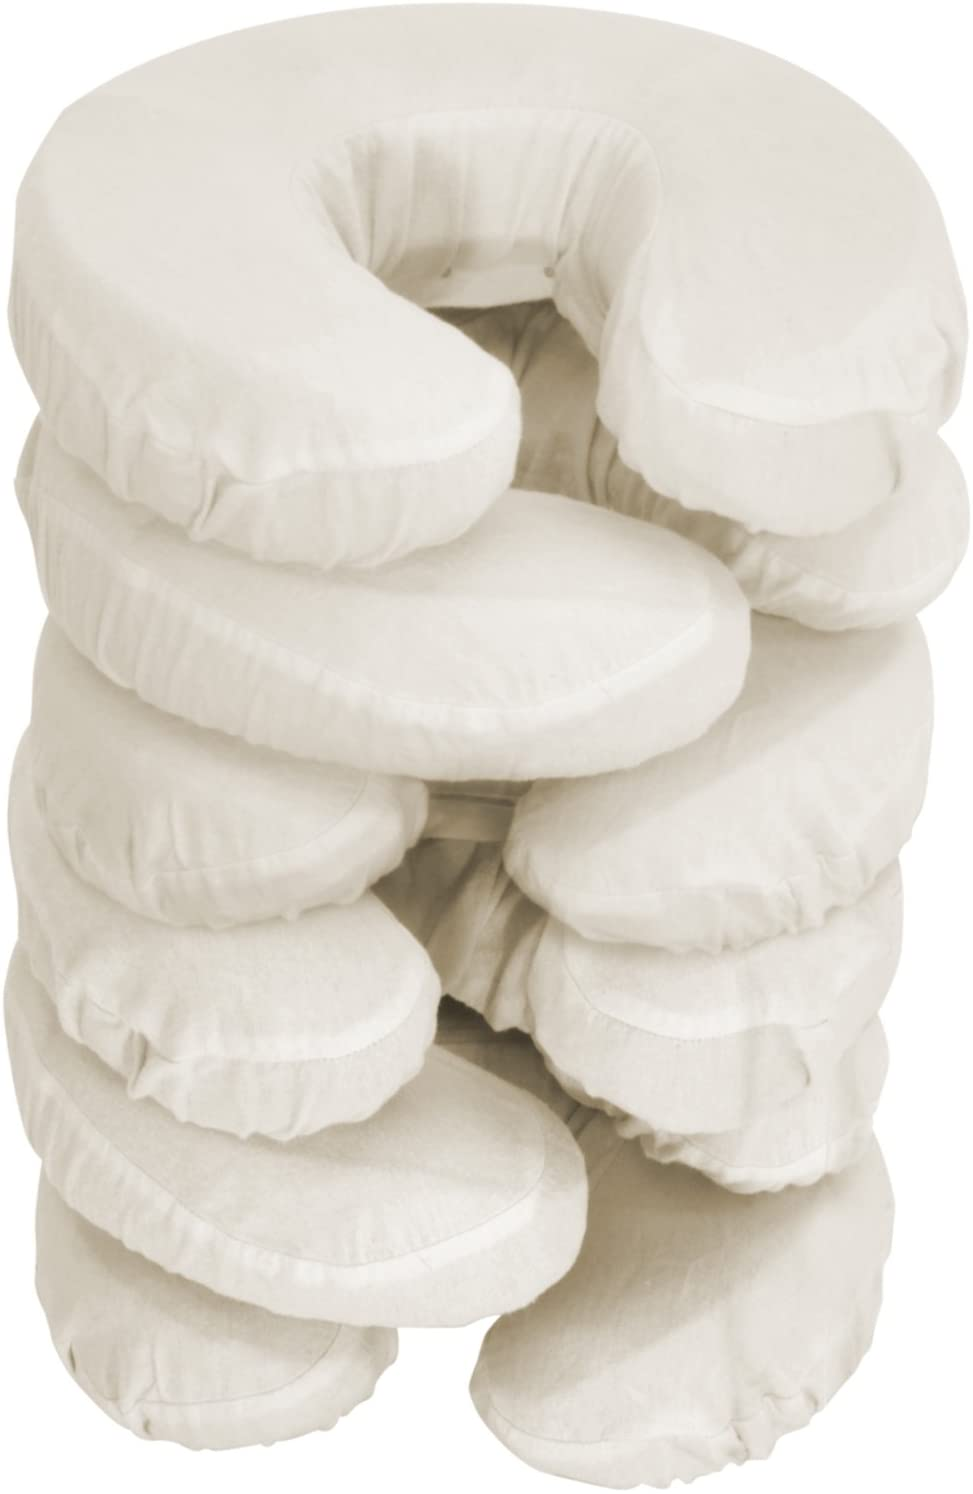 Master Massage Pillow Covers, 6 Pack, Beige